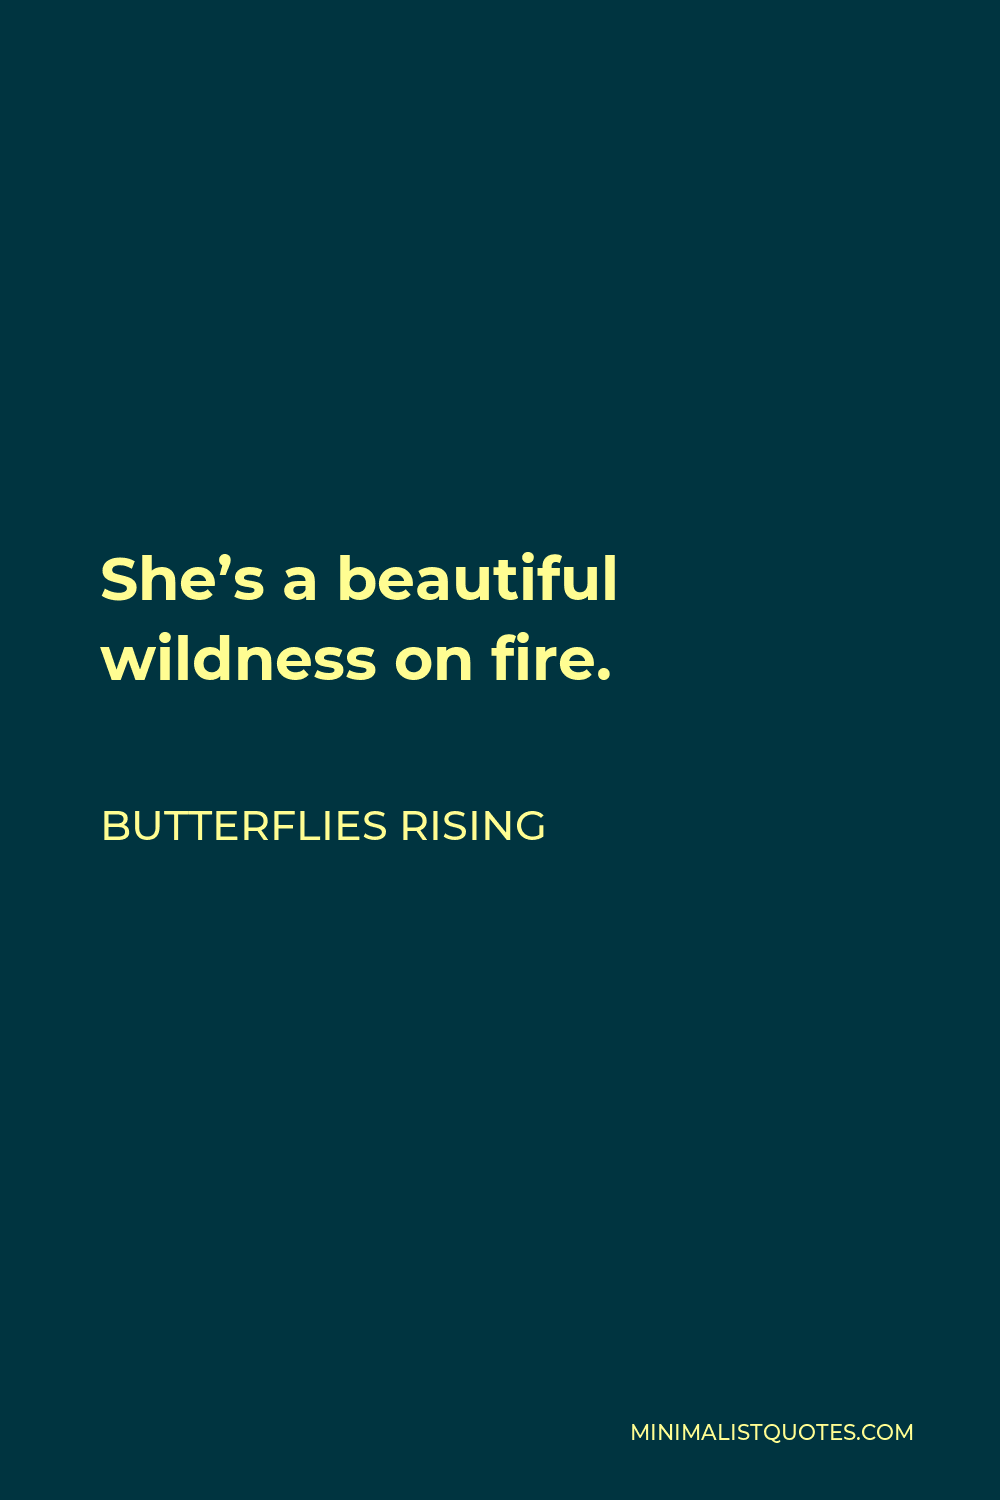 Butterflies Rising Quote - She's a beautiful wildness on fire.